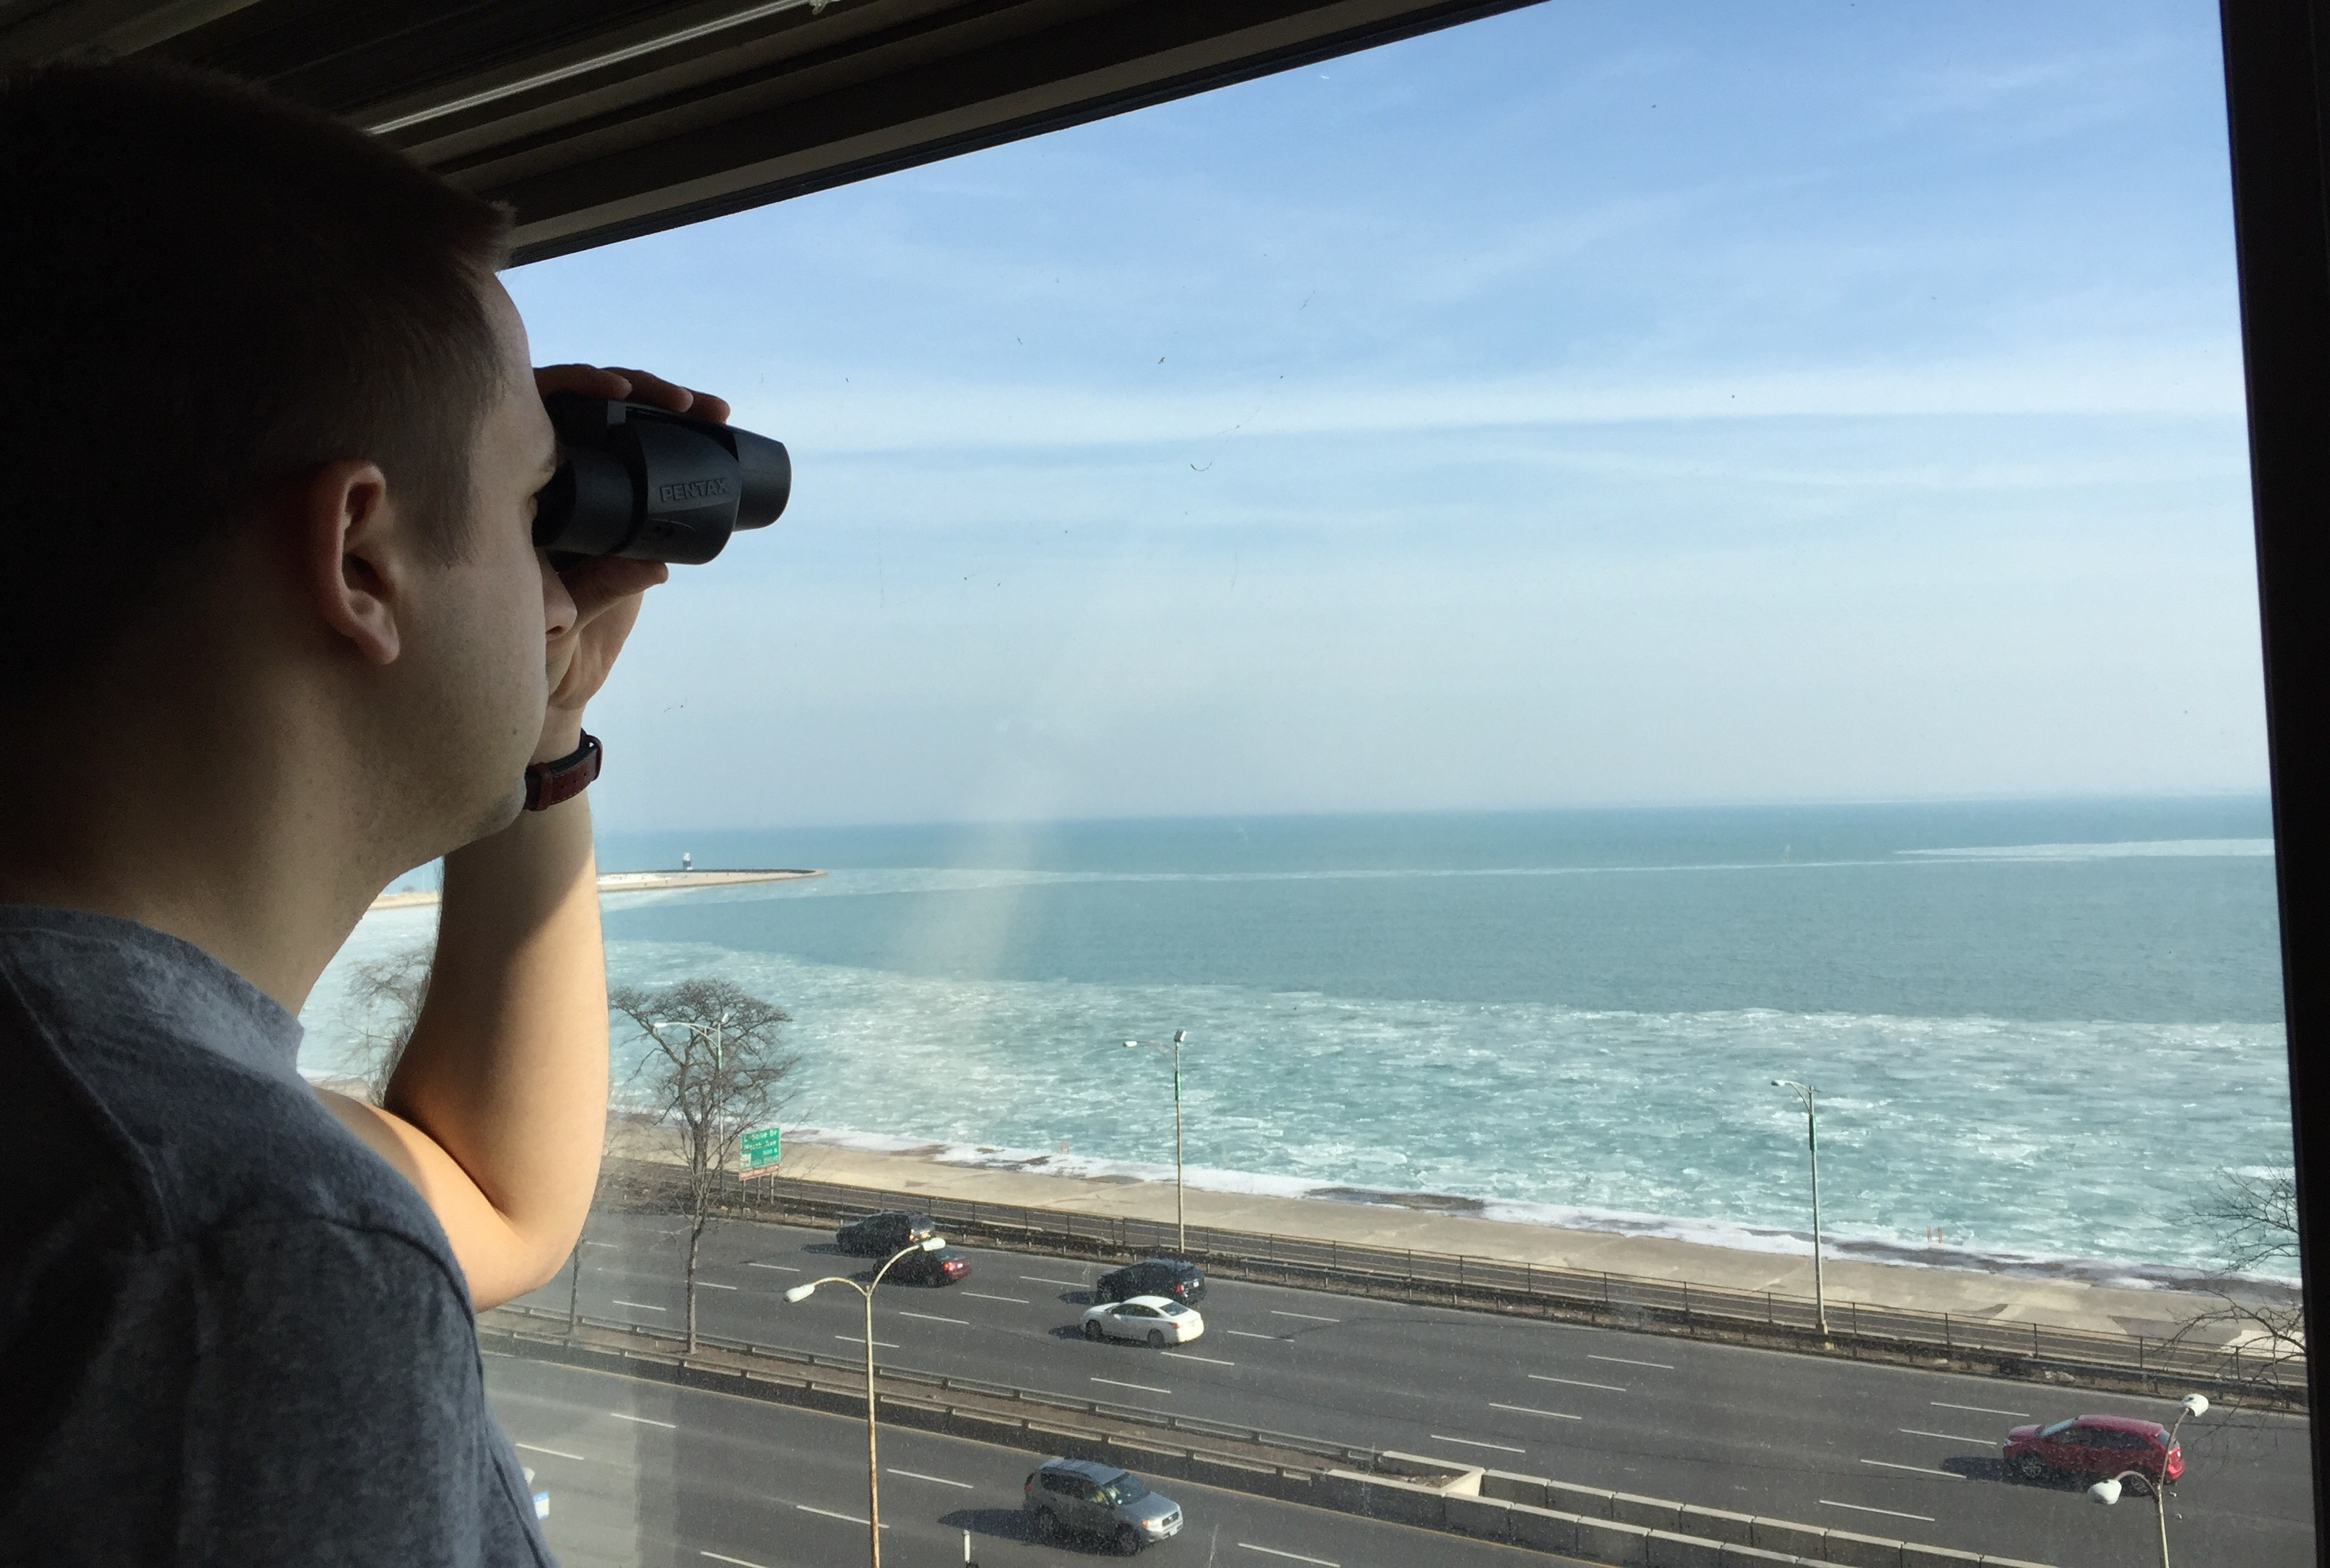 Mike Couzens peers out at ships on Lake Michigan's horizon from his Gold Coast apartment. (Courtesy Mike Couzens)